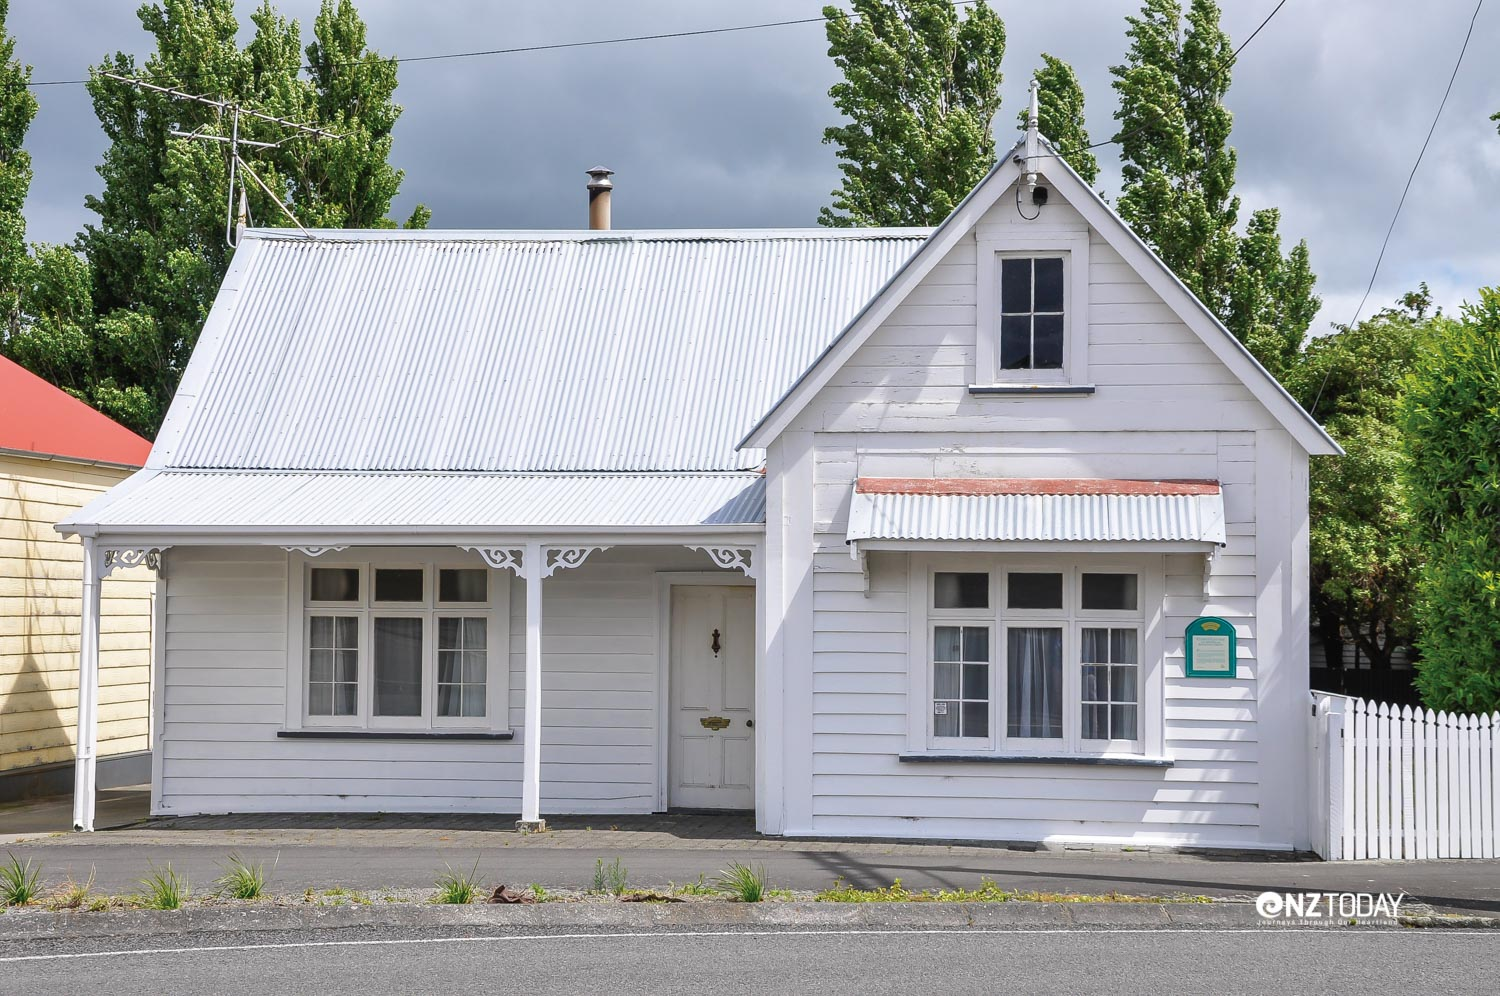 Born and bred Featherston local, Colin Burt saw this property as an investment in his future and bought it when he was 17 years old